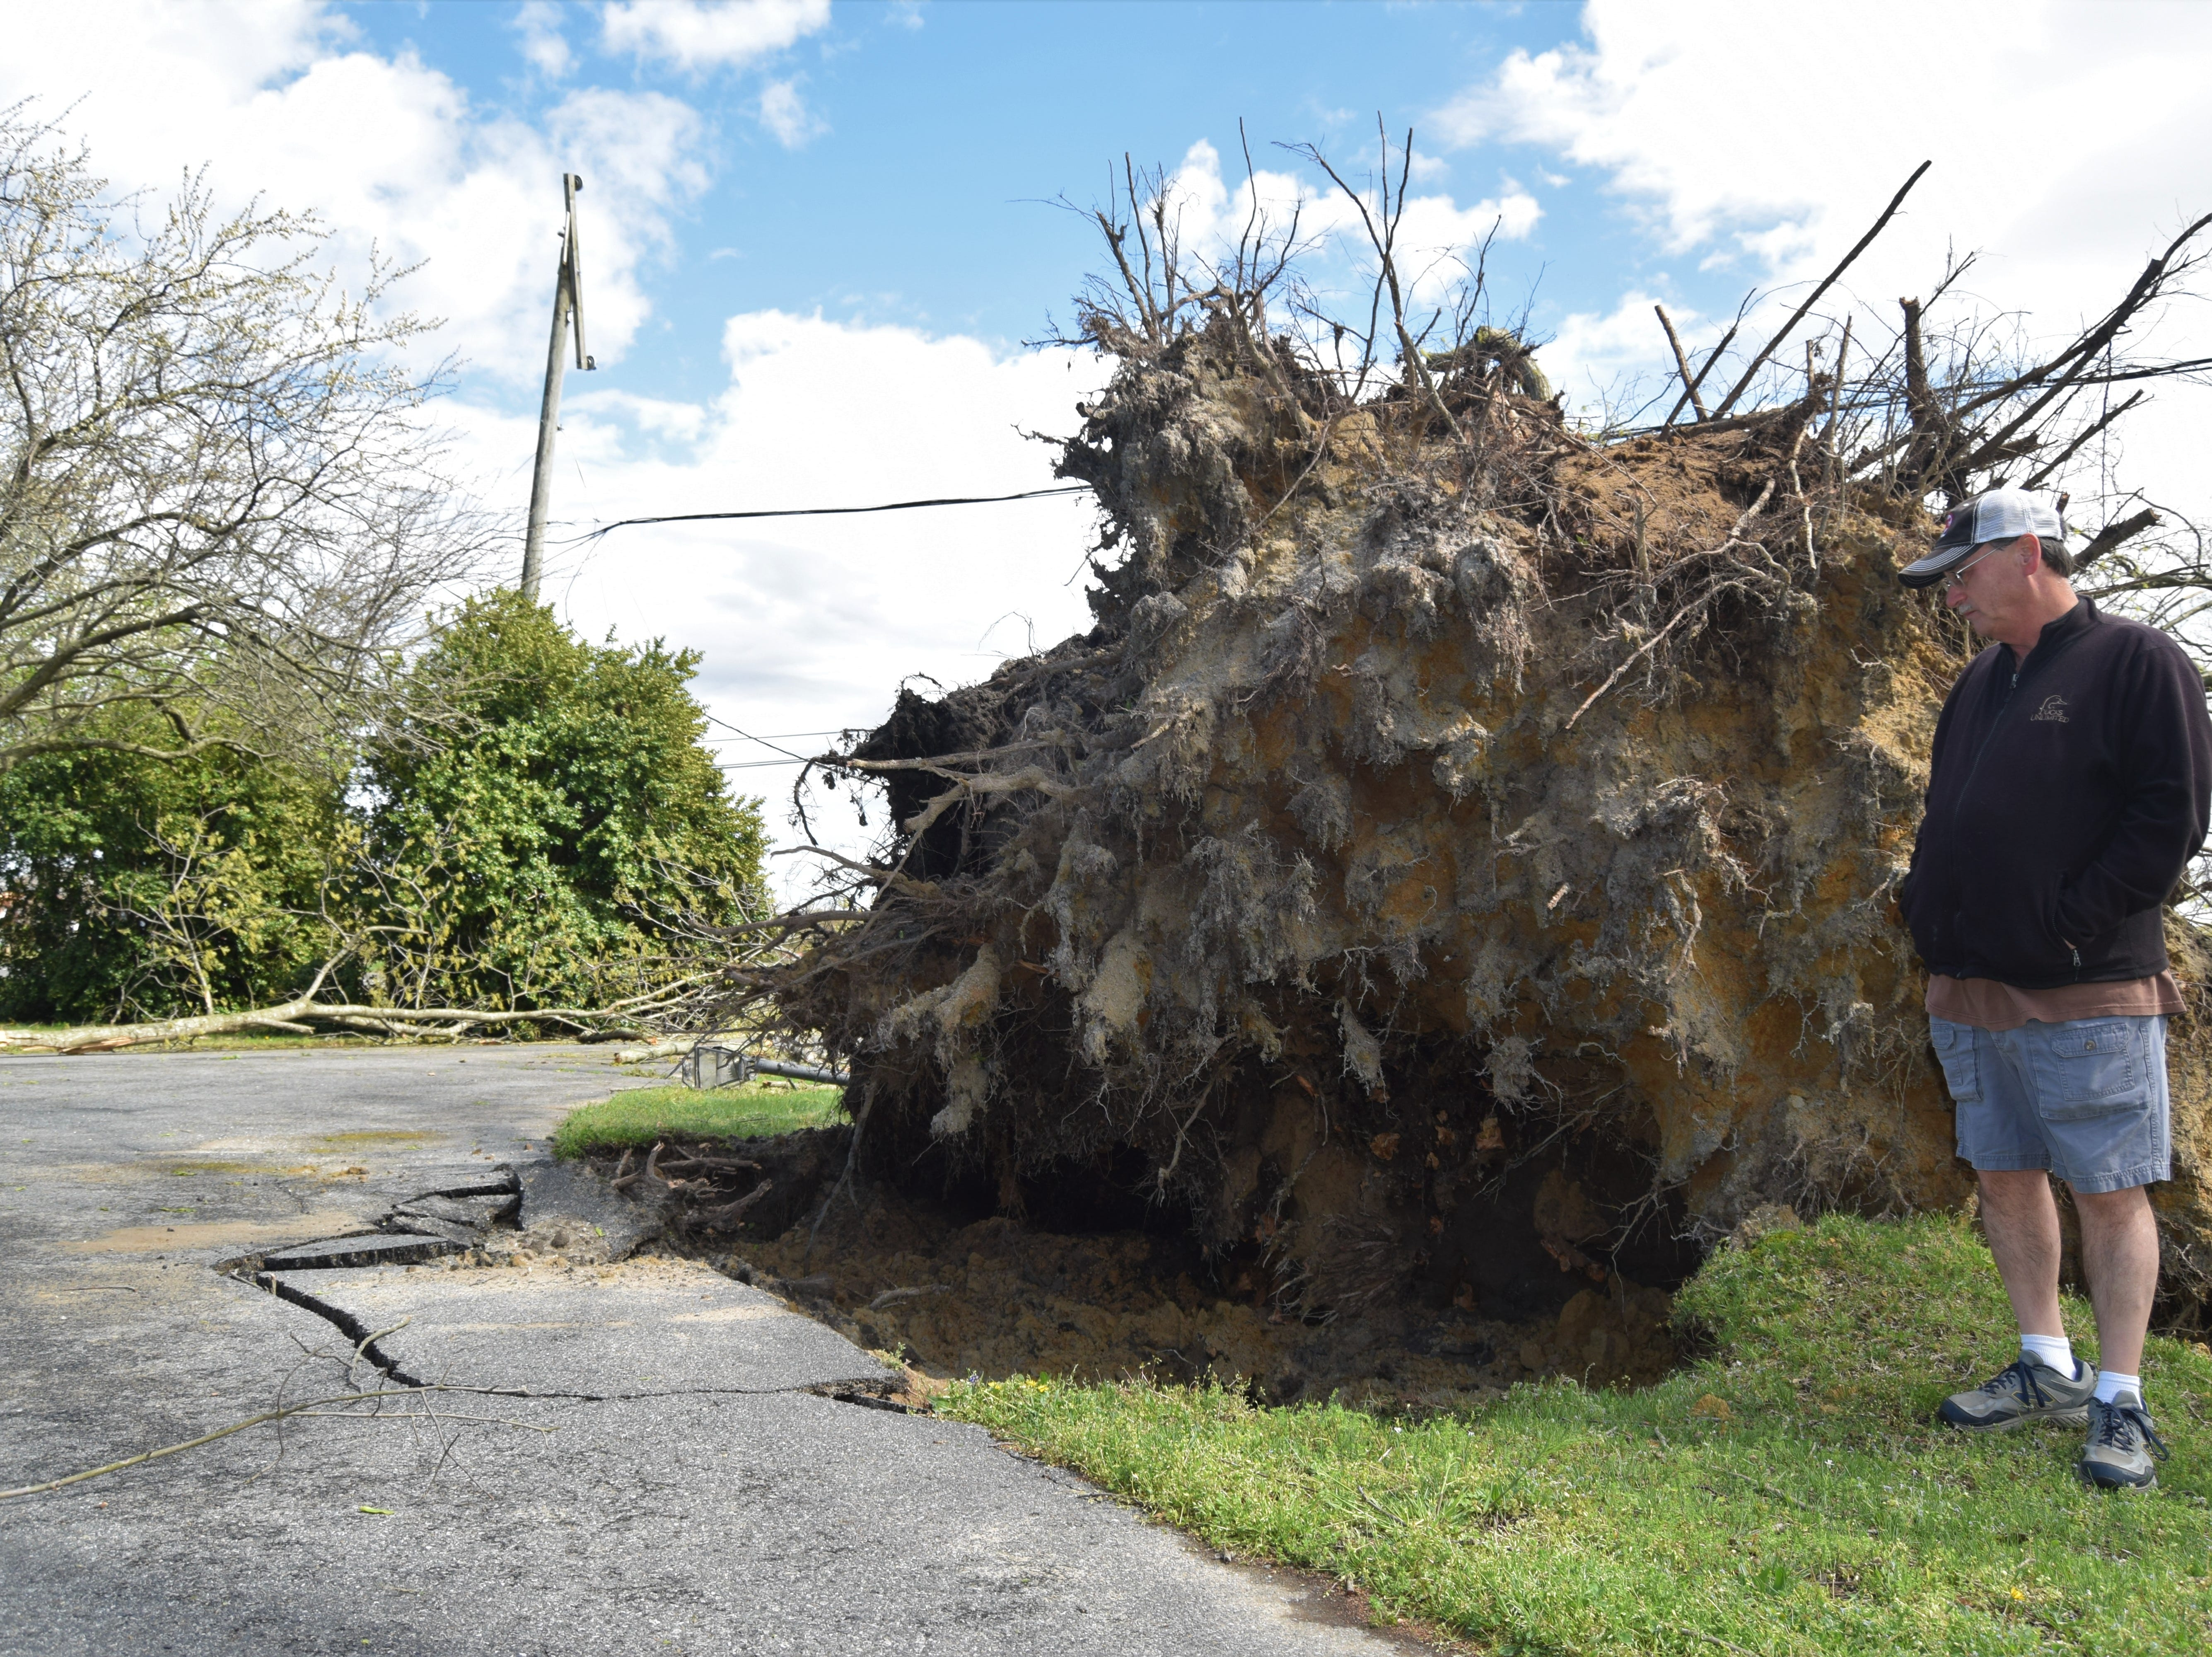 Scott Phillips looks at the aftermath of storm damage that uprooted this tree planted by his parents in the 1940s.